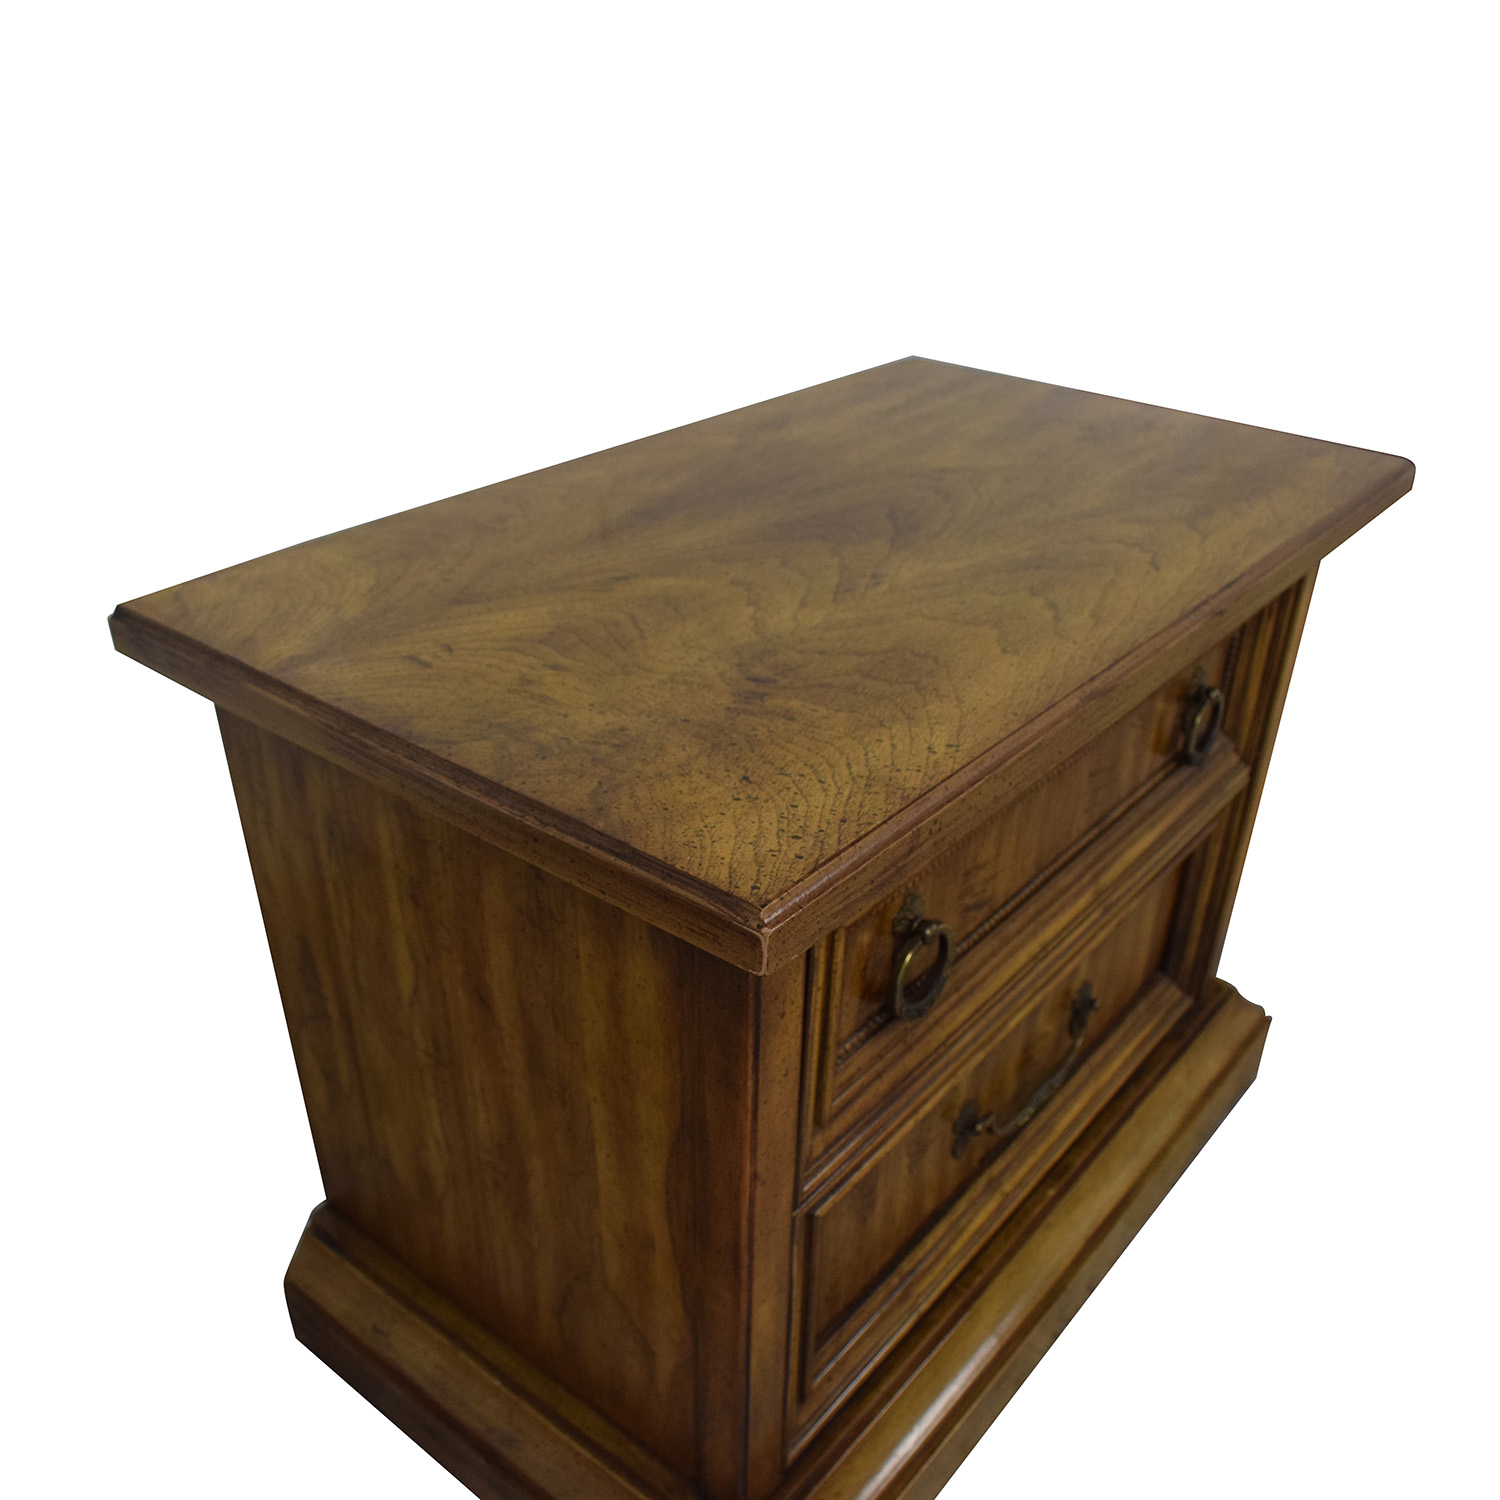 Stanley Furniture Stanley Furniture Two-Drawer End Tables coupon